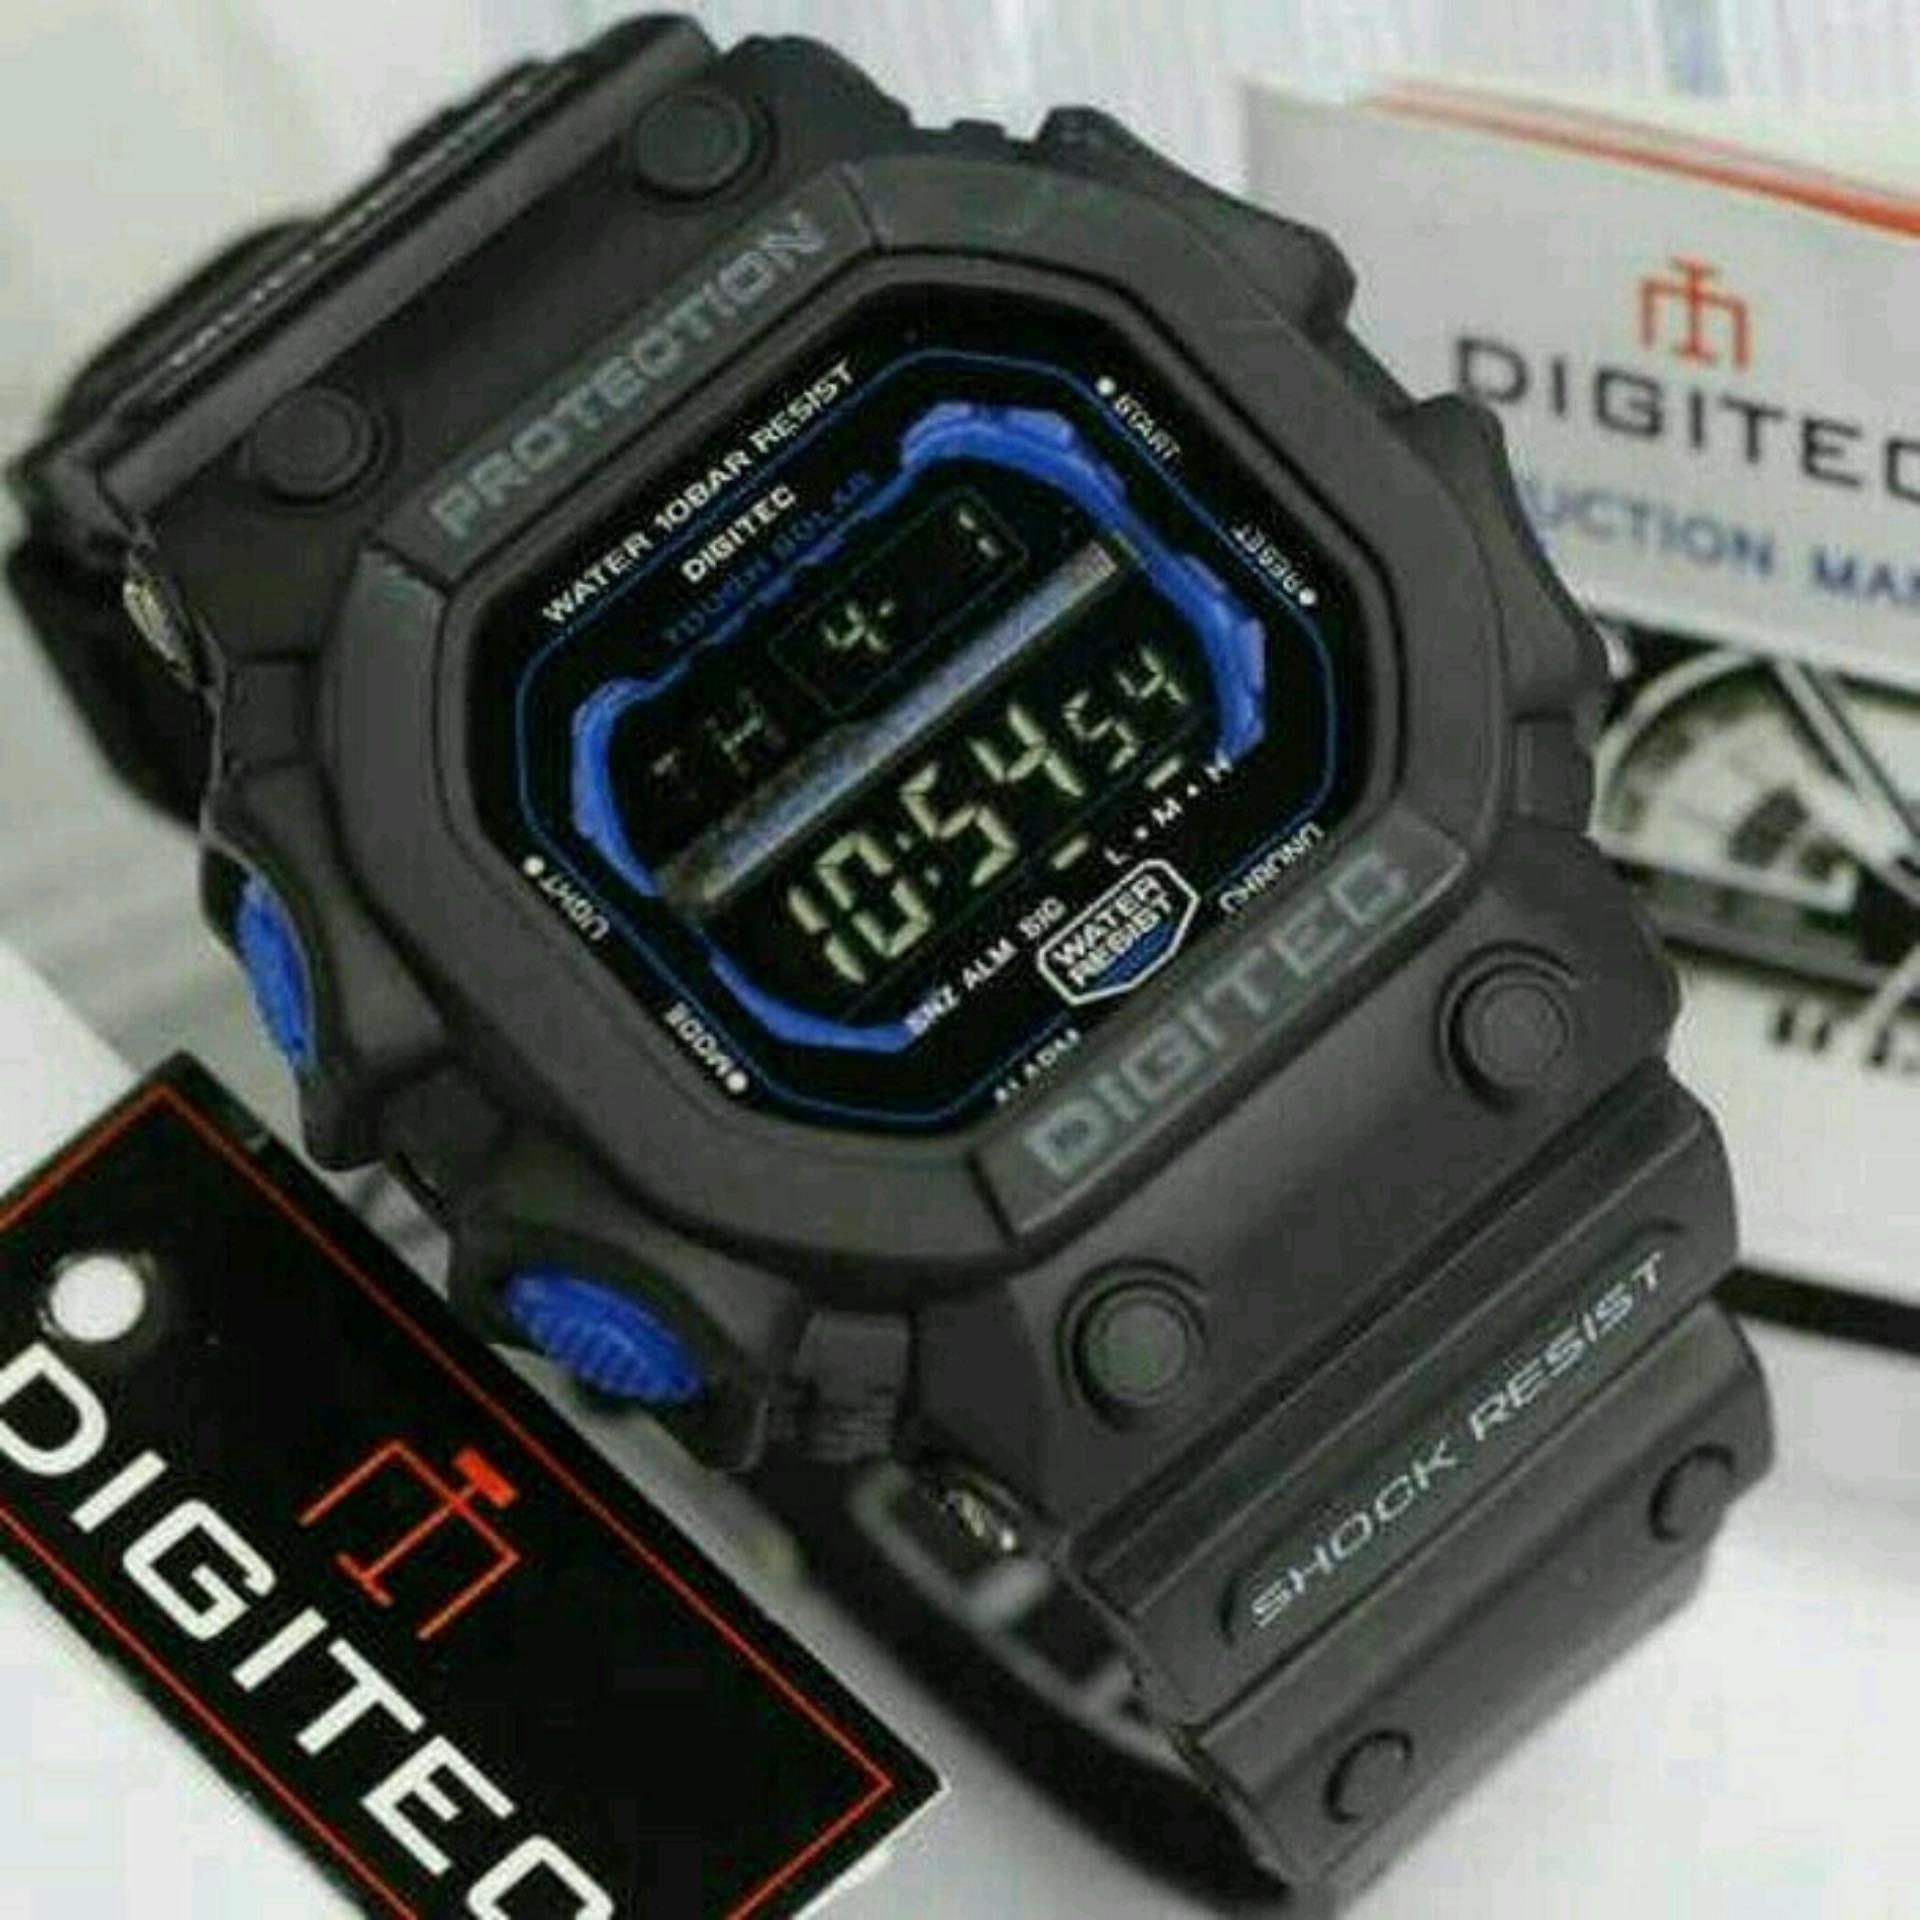 Promo Promo Digitec Monster Dg 2012T Original Anti Air Jam Tangan Pria Sporty Casual Hitam Biru Digitec